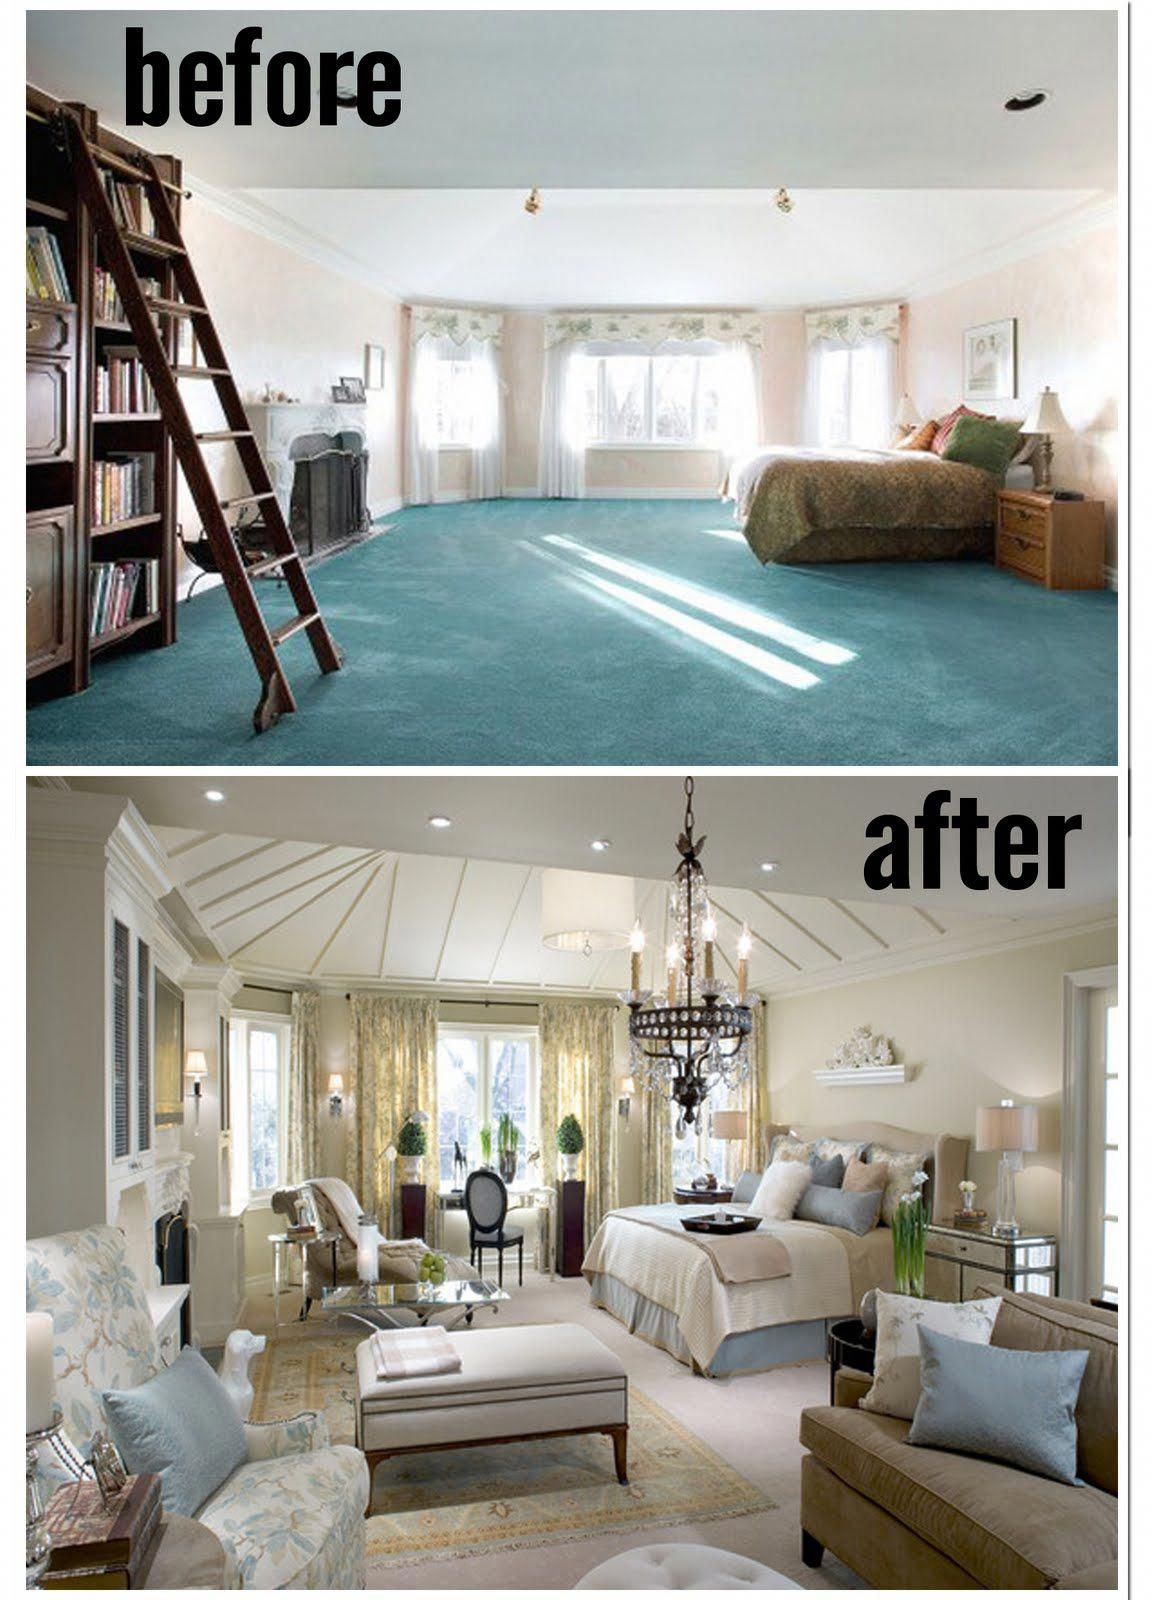 Mama amazing master bedrooms by candice olson before and afters